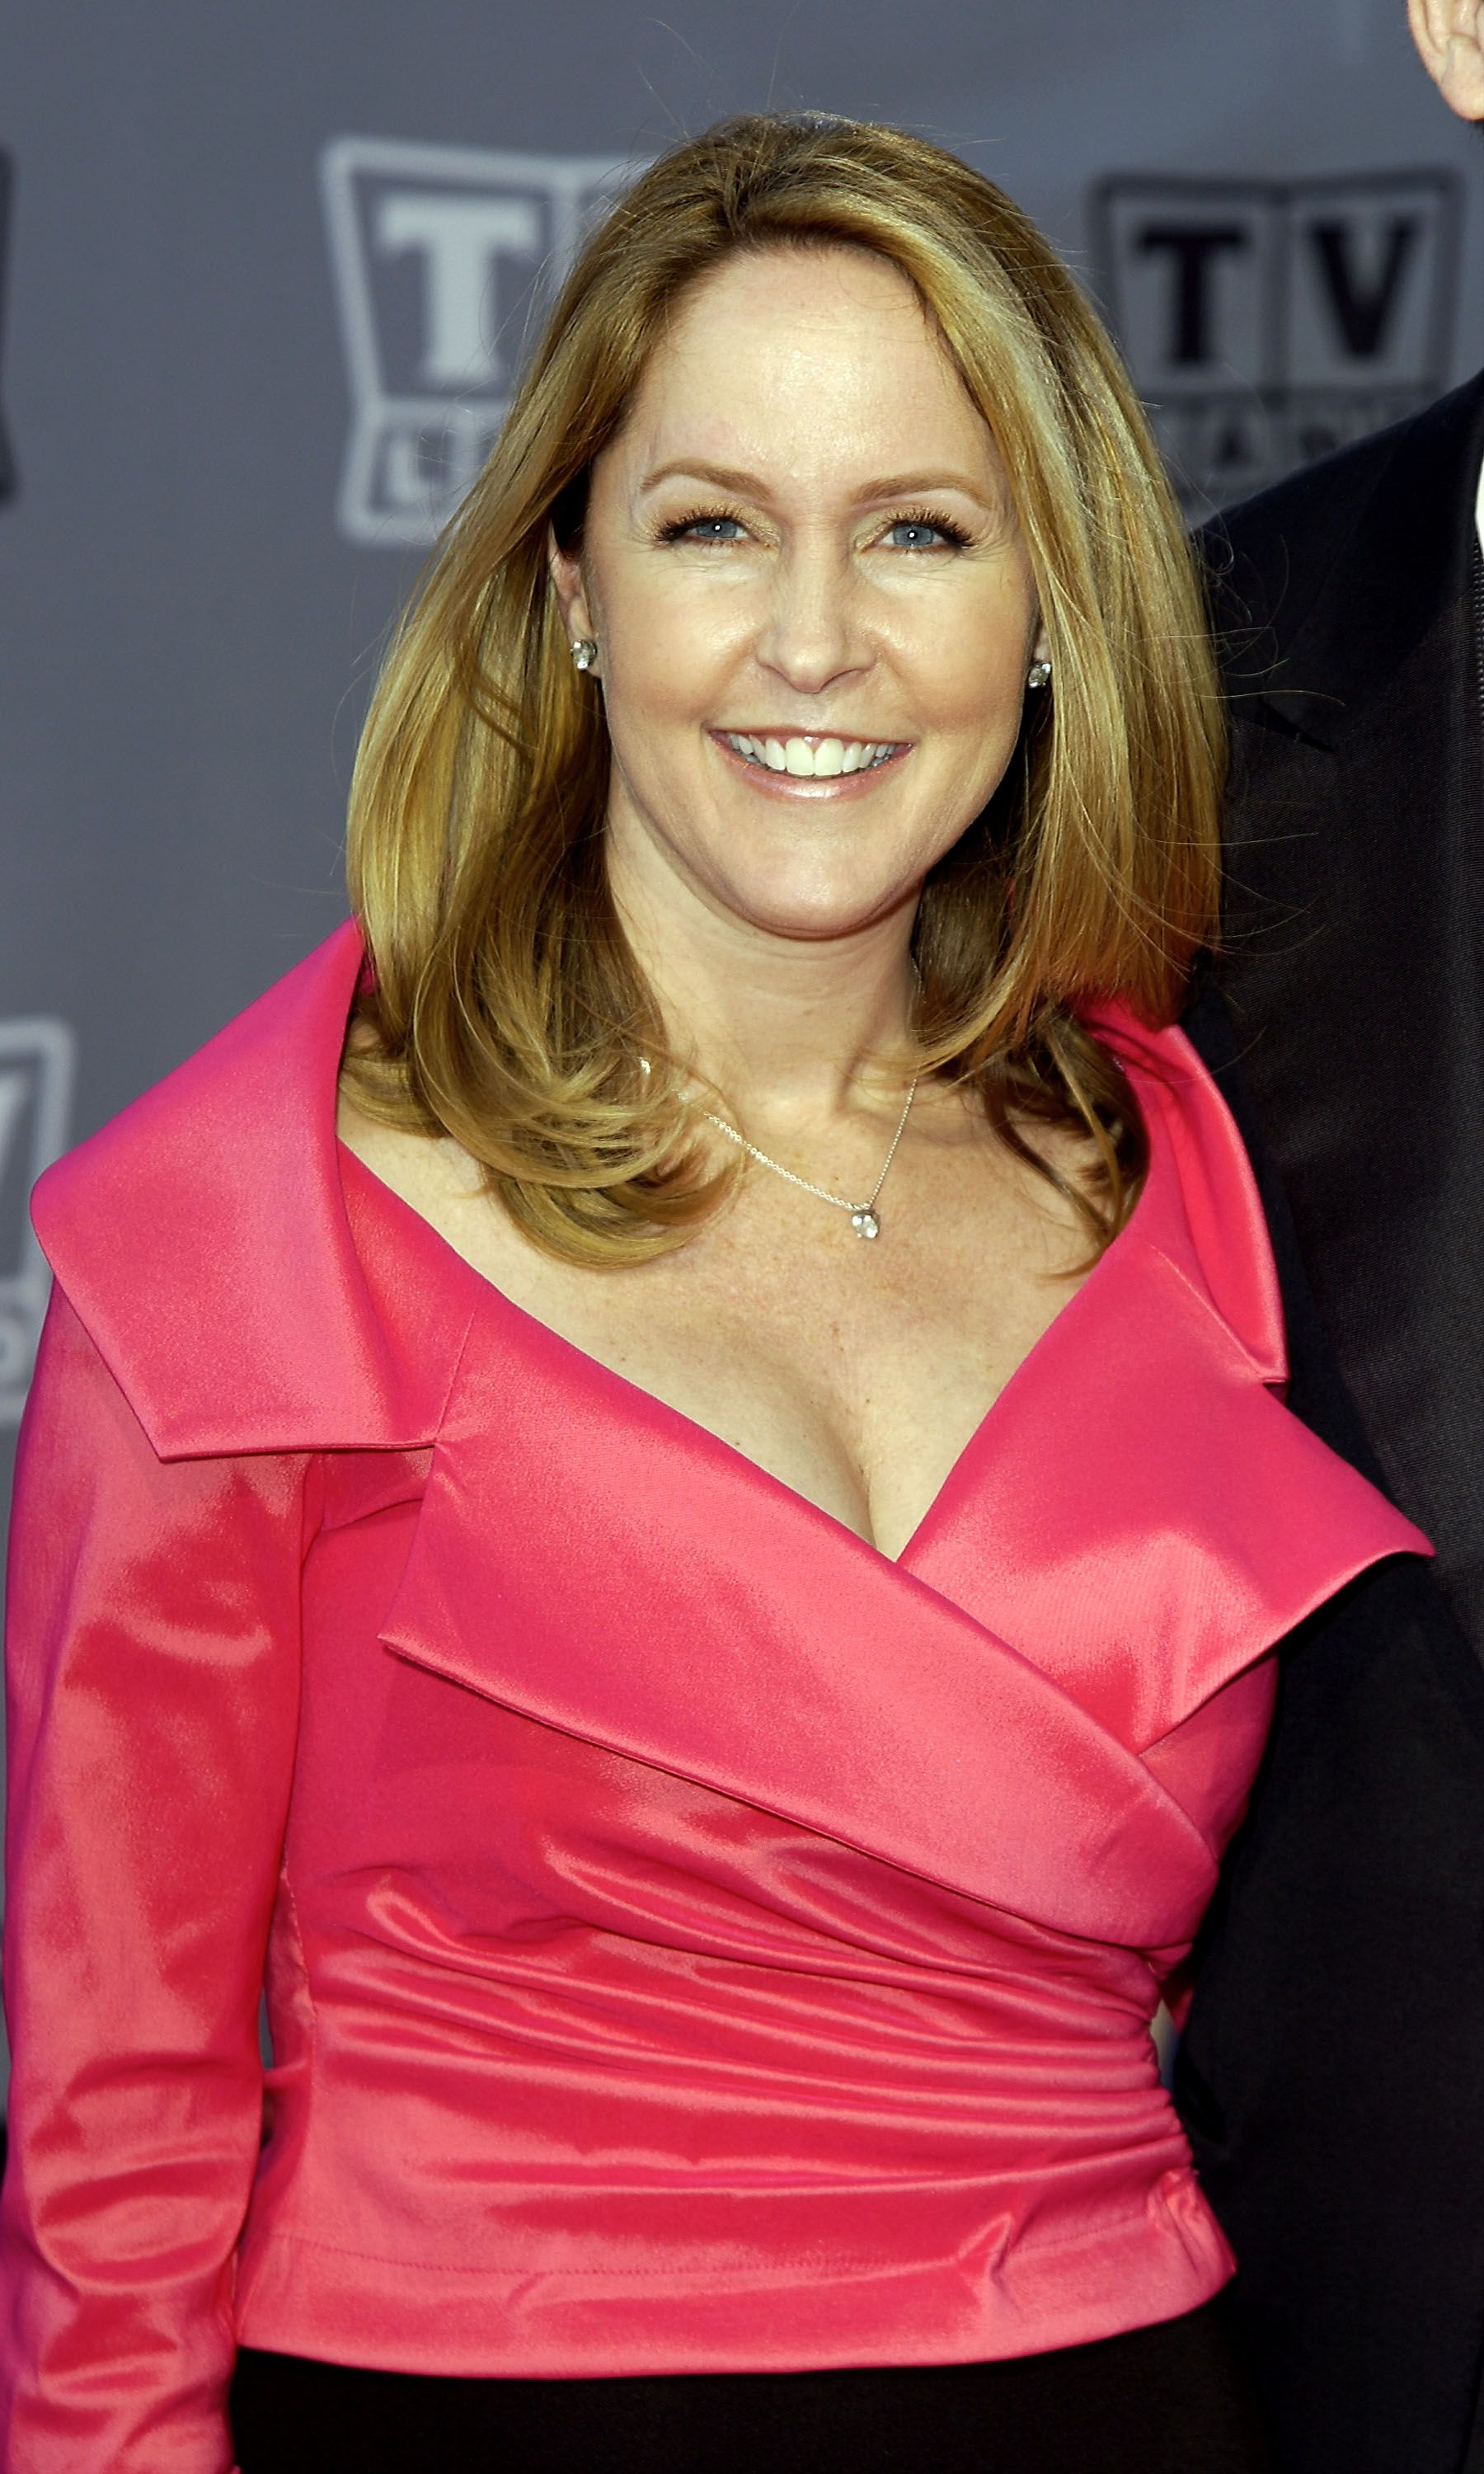 Erin Murphy at the TV Land Awards on March 2, 2003, in Hollywood, California | Photo: Robert Mora/Getty Images